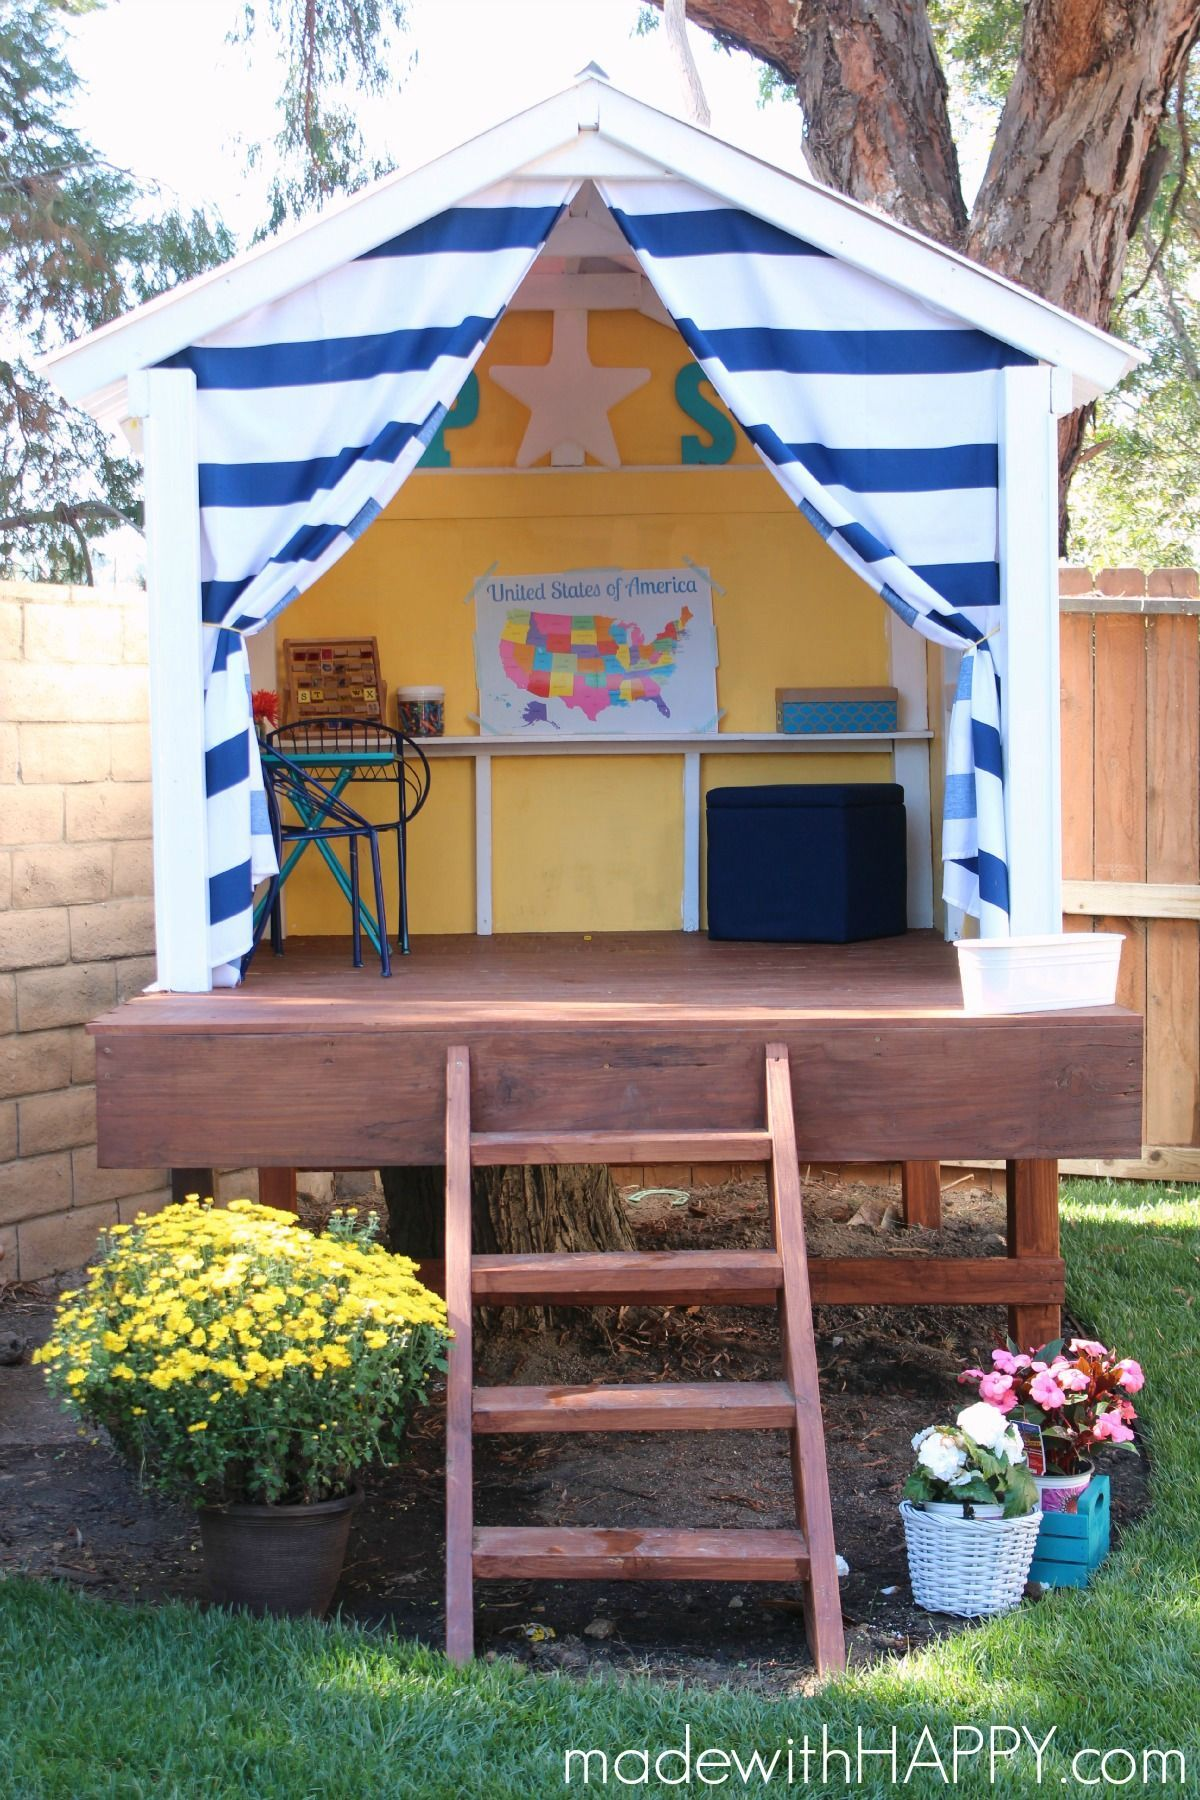 Simple Tree Houses To Build For Kids a tree house, a fort or secret hideout. a simple, easy diy